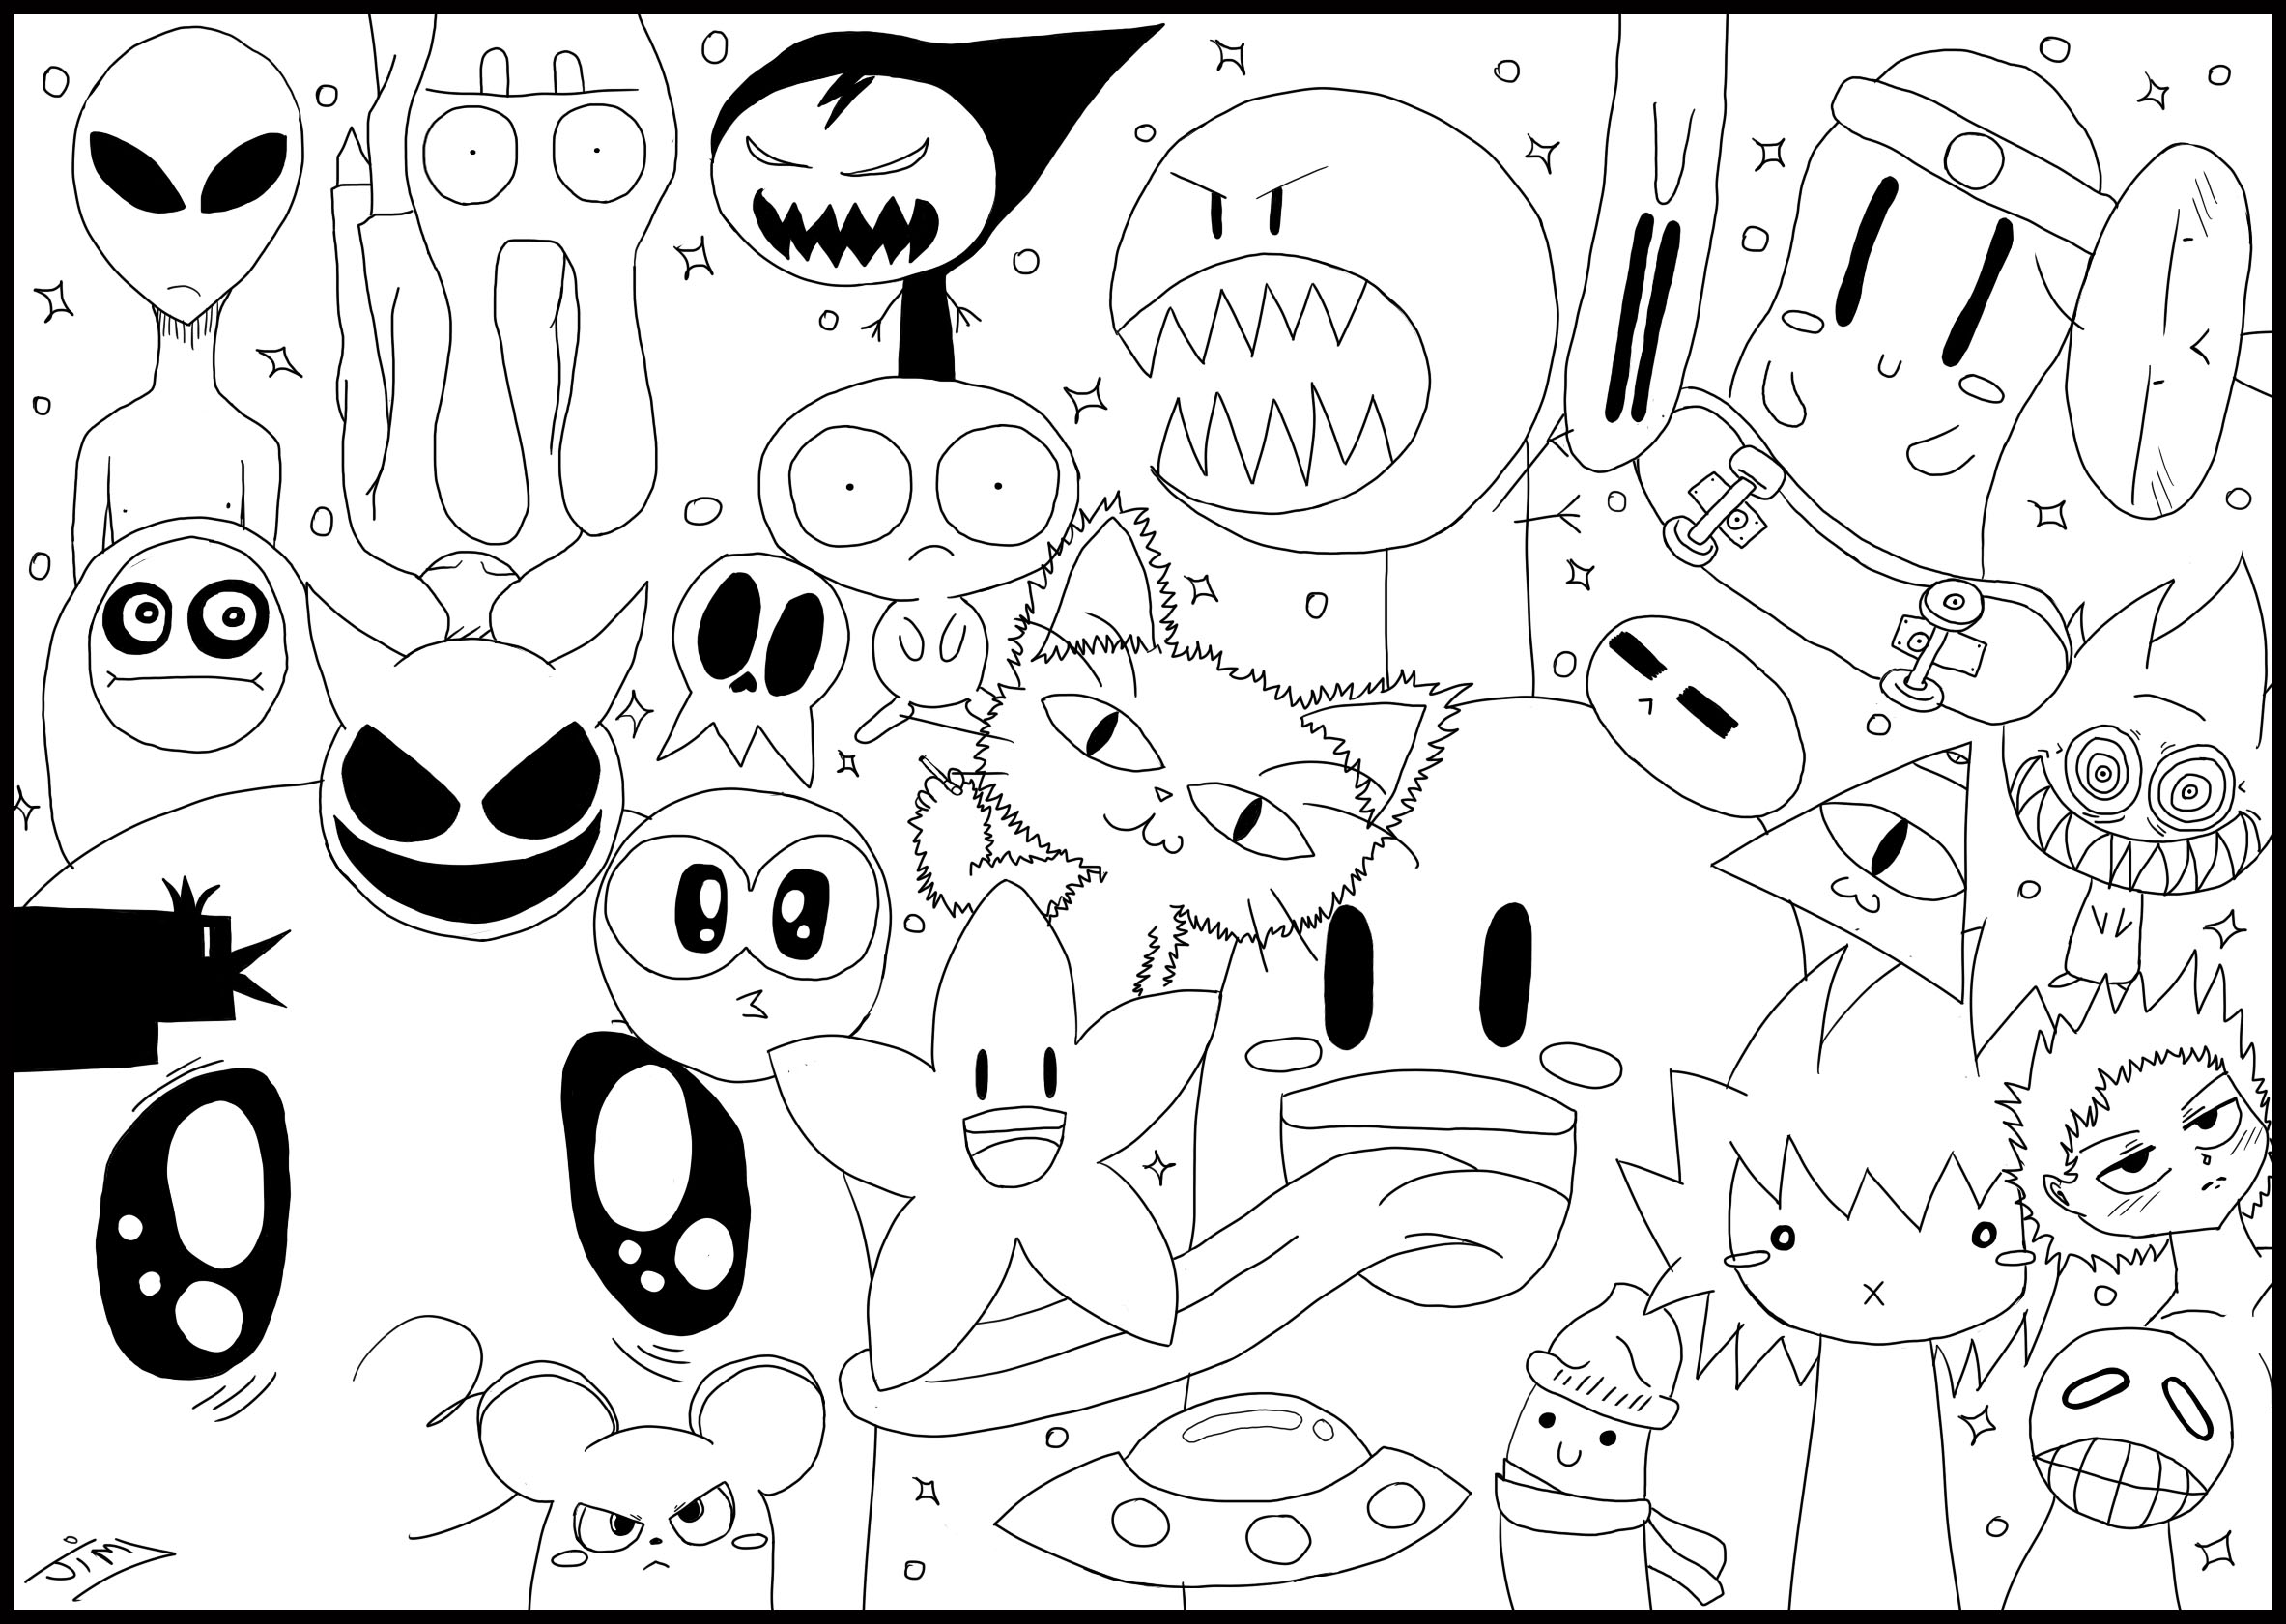 Doodle monster world - Doodle art Adult Coloring Pages